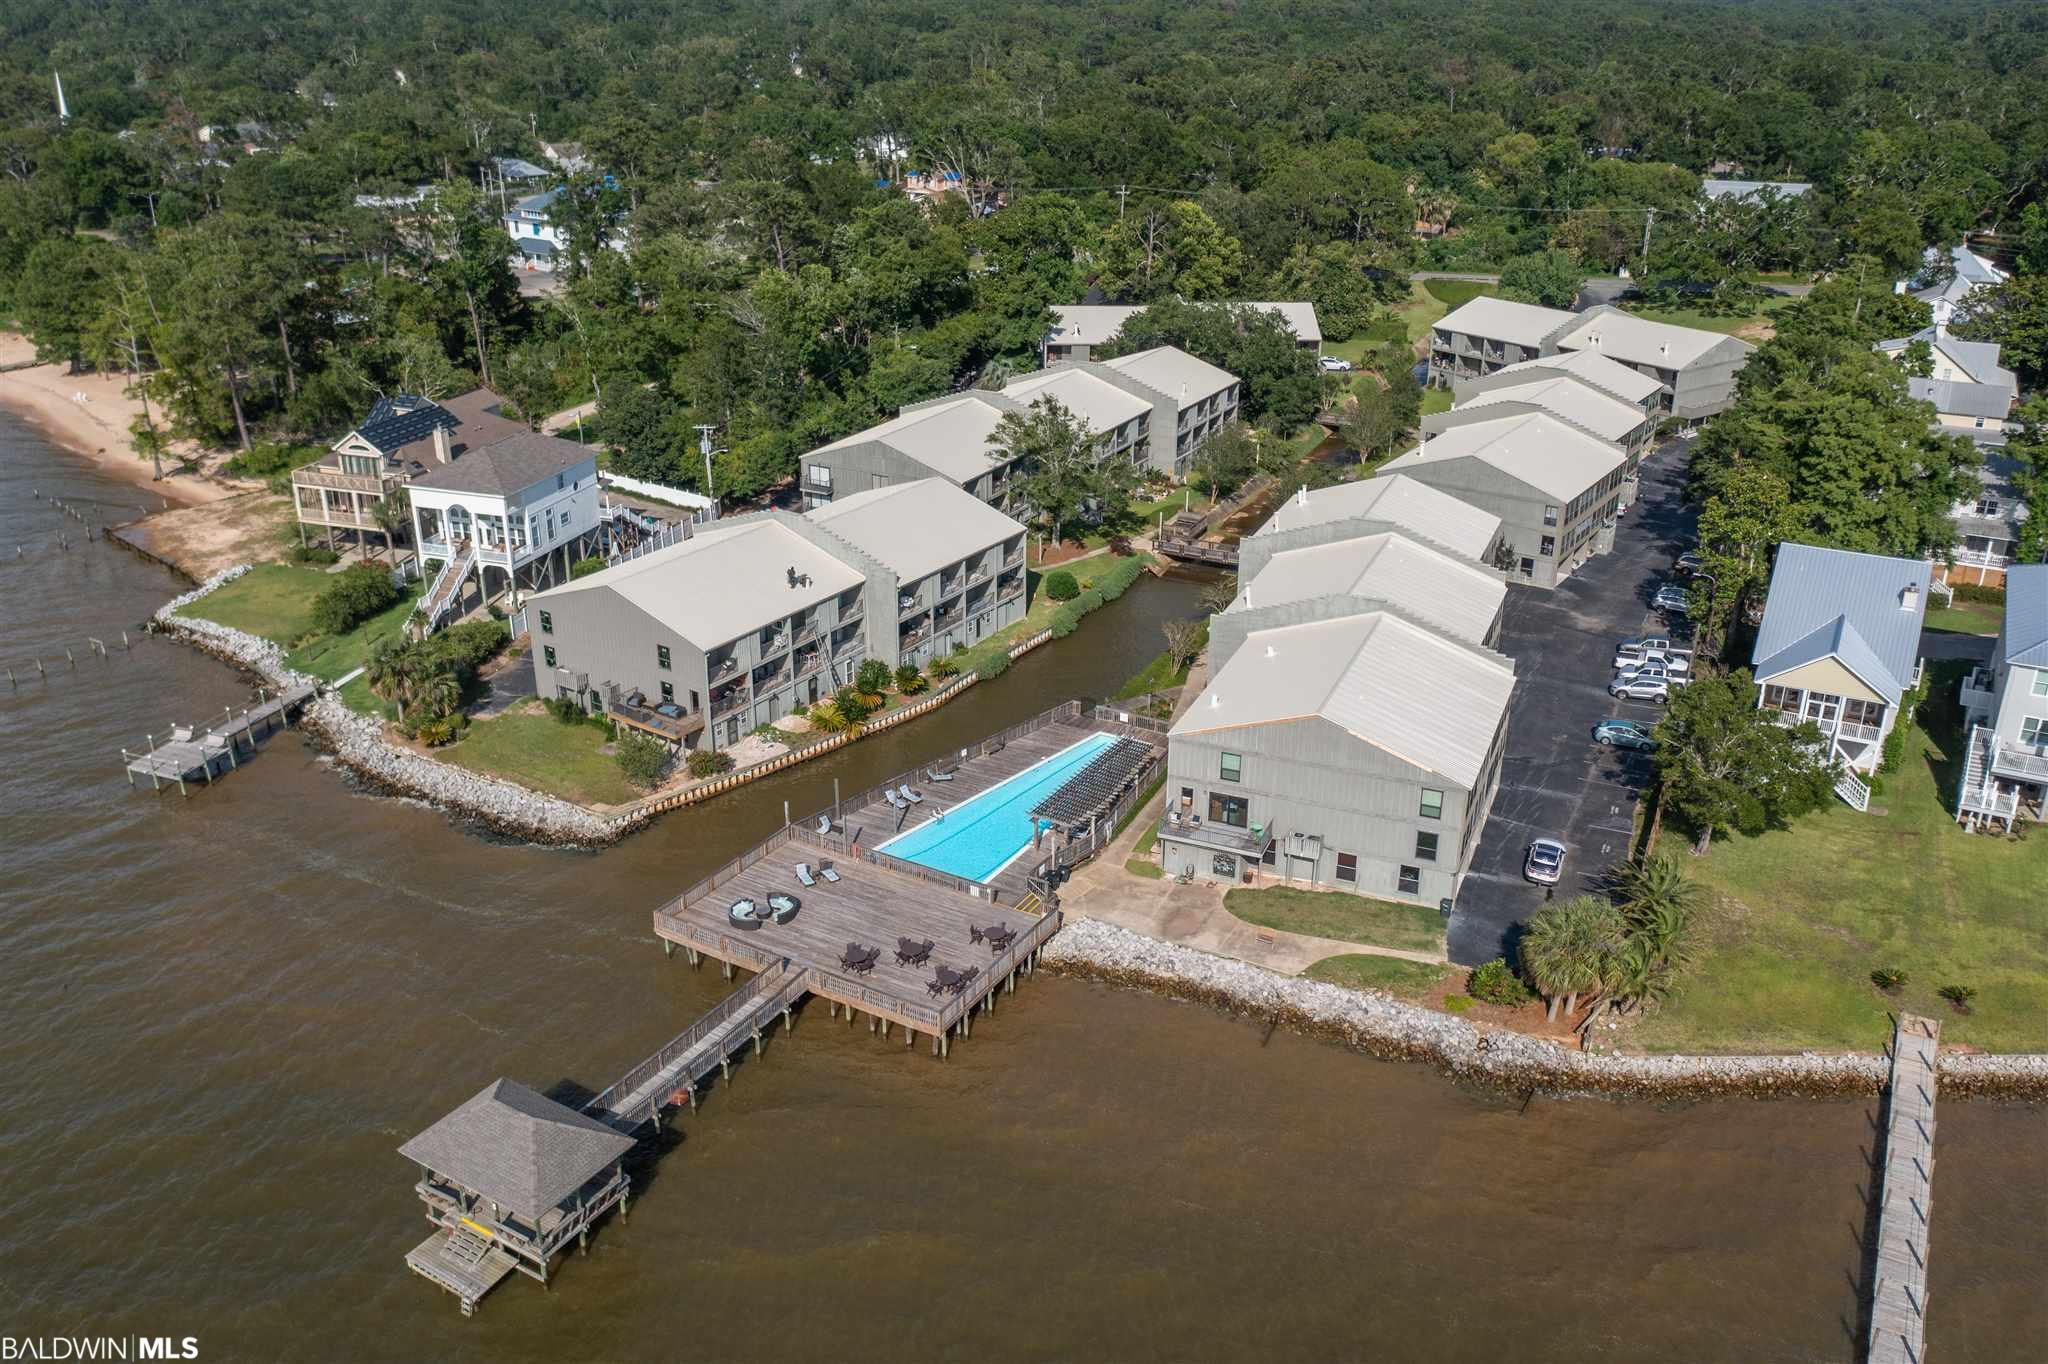 STUNNING Fairhope BAYFRONT TOWNHOME! Enjoy spectacular Mobile Bay sunsets from your very own home! Relax by the saltwater pool, crab or fish from the community pier, relax under the covered gazebo or sit in the sun on the large Bayfront Deck anytime you want! COMPLETELY RENOVATED unit features all new plantation shutters,  updated kitchen w/granite countertops and stainless appliances, upgrade ceiling fans, tile flooring throughtout, crown molding and upgrades throughout! This unit offers 2 bedrooms,2.5 baths, PLUS Lg BONUS ROOM downstairs w/full bath ! As you enter the first floor, you will immediately see this bonus room! It would be perfect for a home office, additional bedroom, bonus room, mancave, or just extra space for your guests! And it even has its own patio for afternoon cookouts!  The kitchen in this unit is beautiful... with granite countertops, custome tile backsplash, large island, custom cabinets, stainless appliances and open to breakfast area where you can watch the sunrise every morning!The spacious den has a patiio which opens to a deck with indirect views of swimming pool and Mobile Bay! The 2nd bedroom offers private bathroom and another deck for morning coffee or afternoon sunsets facing Mobile Bay! Master Bedroom with tiled shower andlarge walk-in closet. Conveniently located along the bayfront walking trail, and just minutes from the Fairhope pier. Take your golf cart tothe many festivals, and spectacular downtown shopping and restaurants that this beautiful town has to offer! HOA fees include commonarea insurance(wind, hail, flood) which covers exterior of entire complex, water, sewer, trash, termite bond, flood insurance, landscaping,pool & ground maintenance. This complex is in a PRIME LOCATION for your primary residence or a second home! PRICED TO SELL